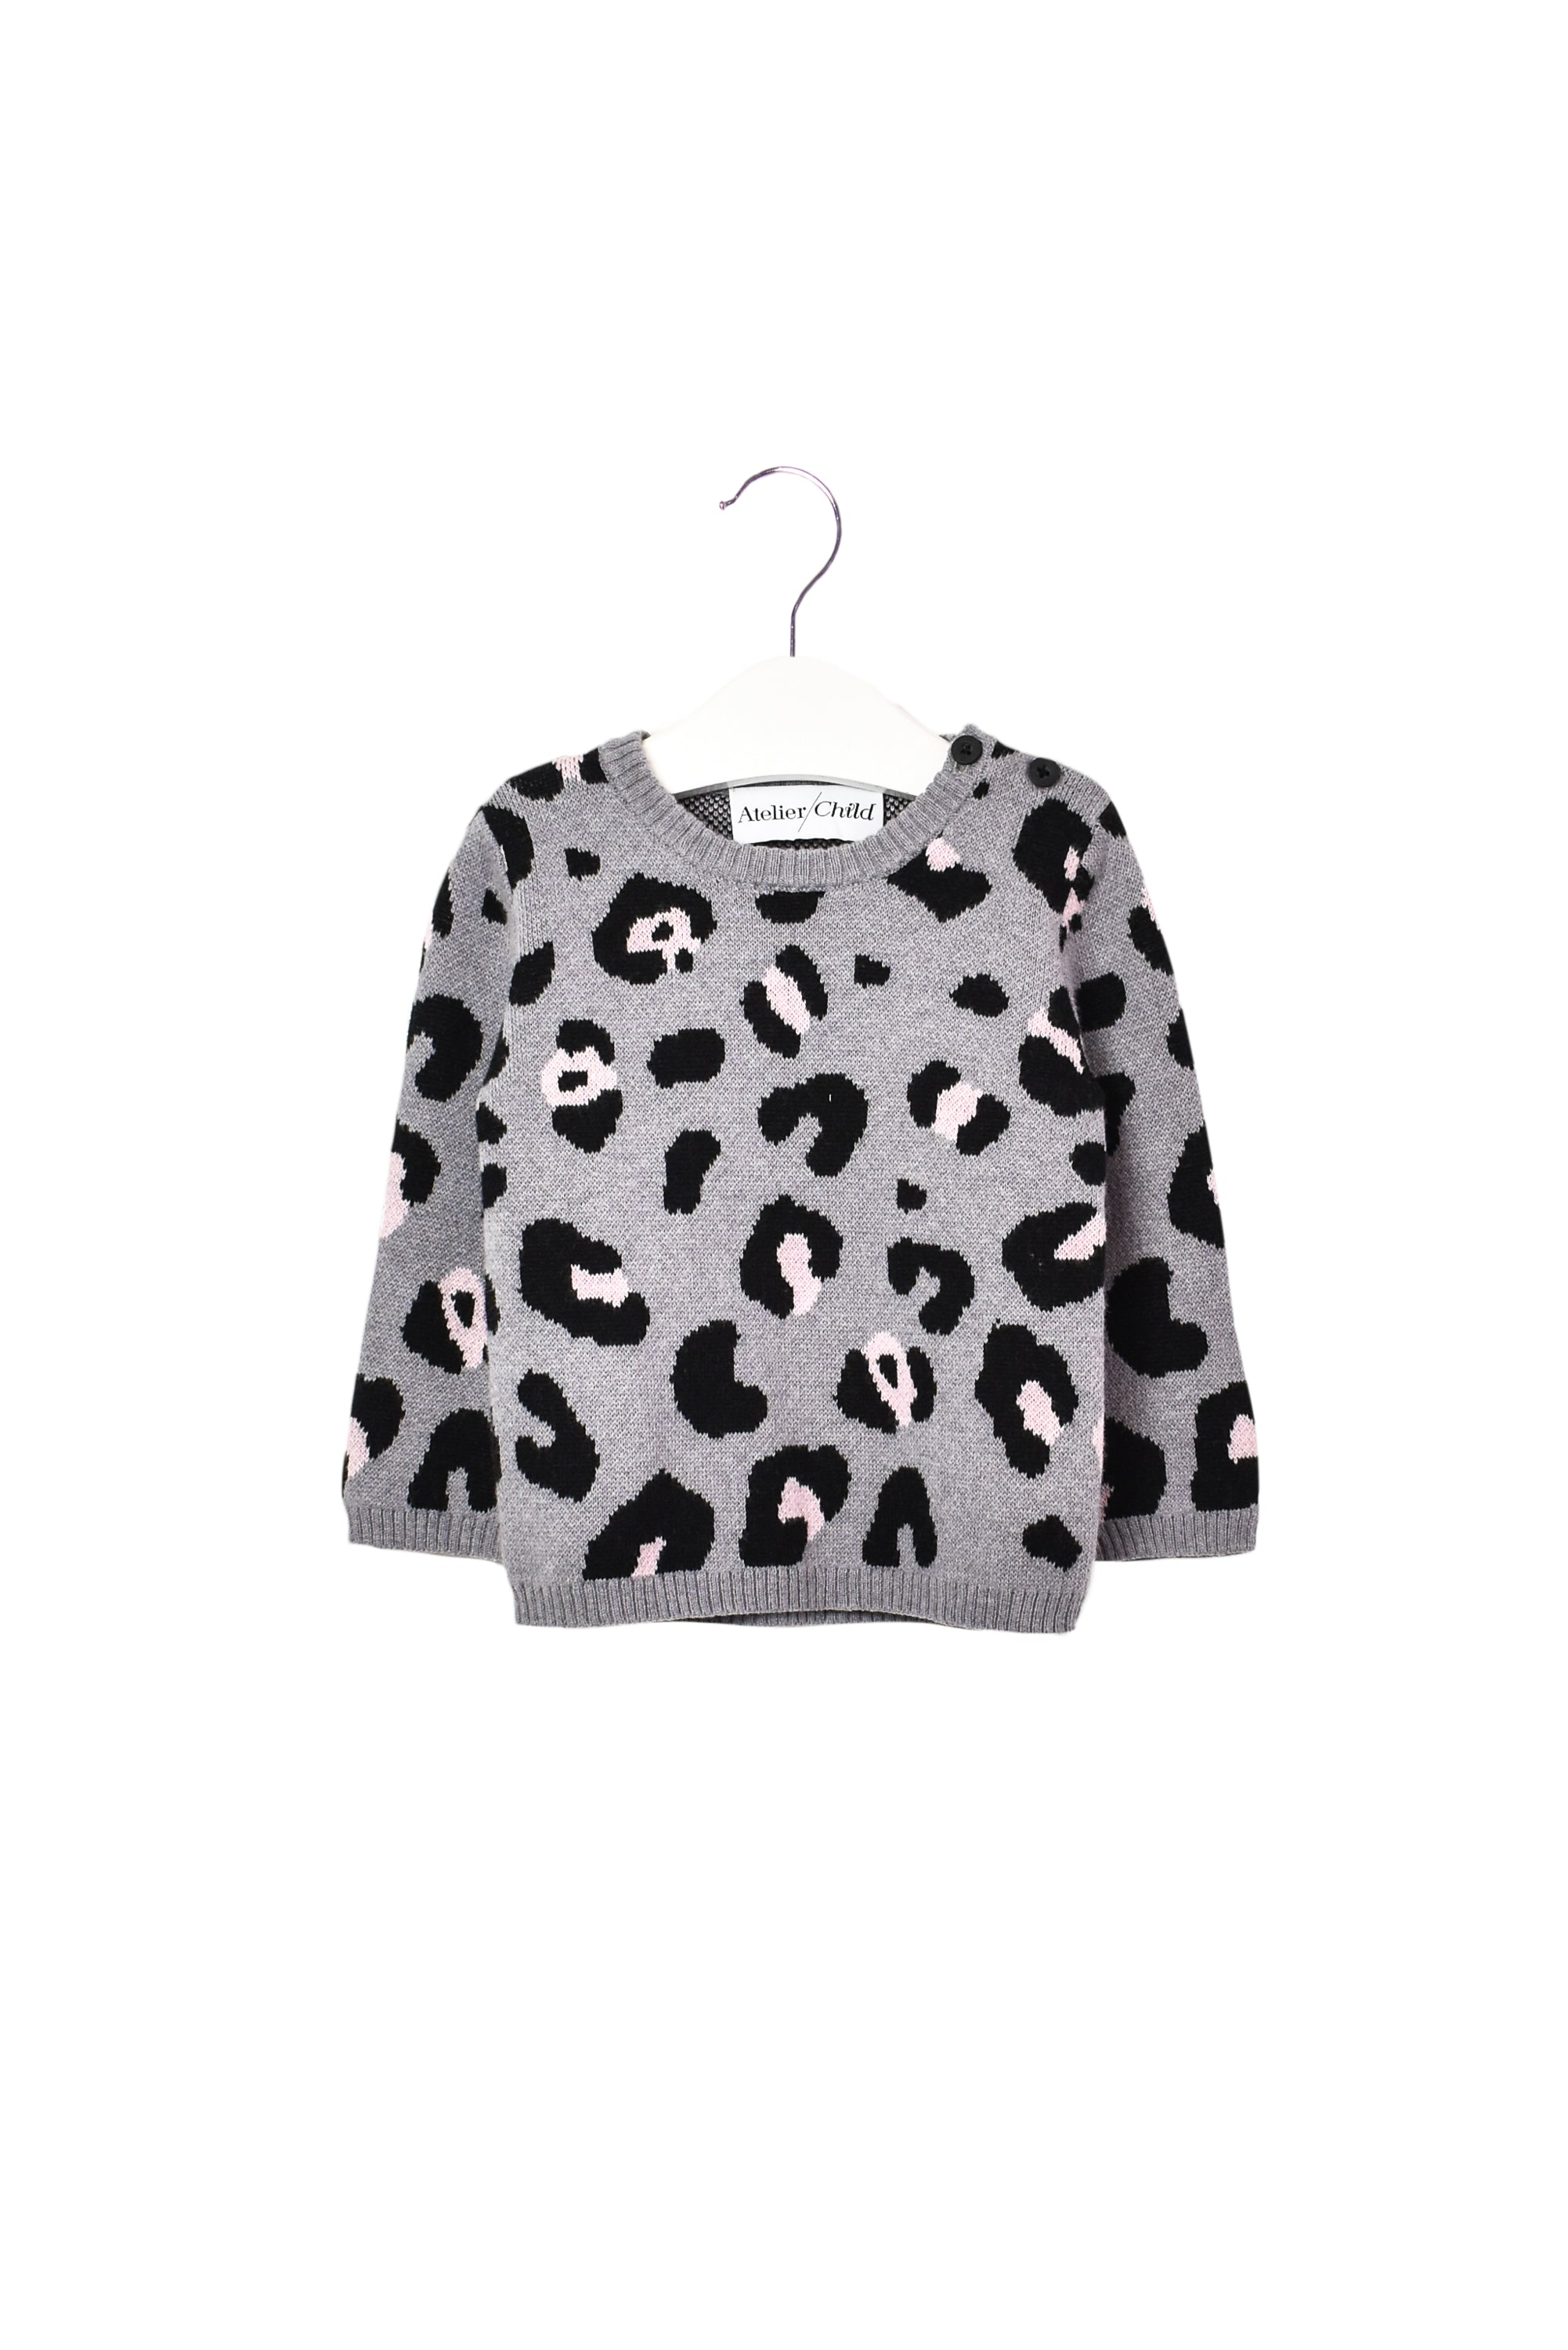 10007589 Atelier Child Baby~Sweater 1-2T at Retykle